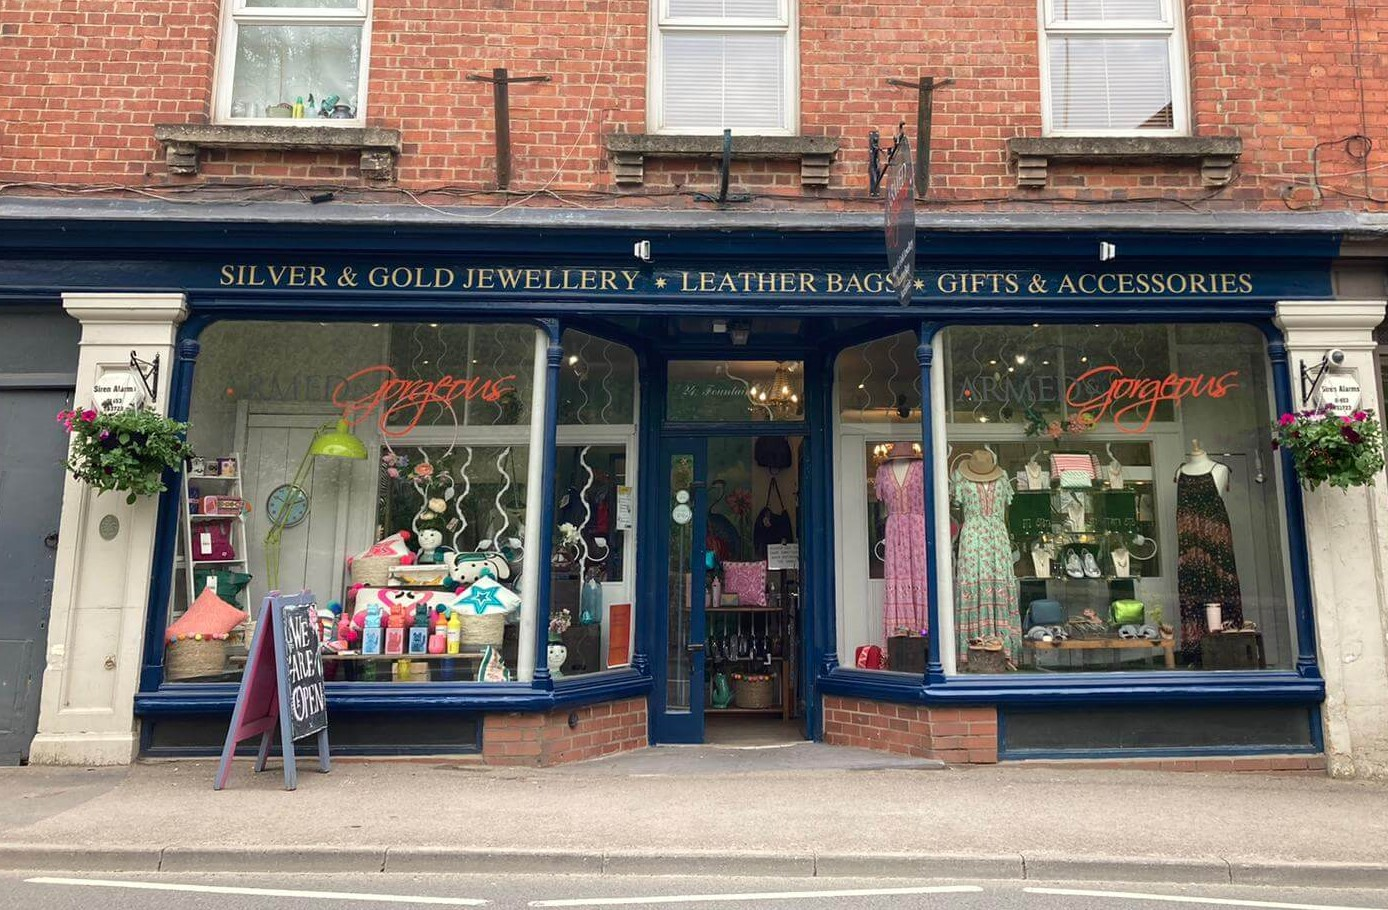 Our Jewellery Gifts, Fashion and Womenswear shop in the cotwolds, Gloucestershire